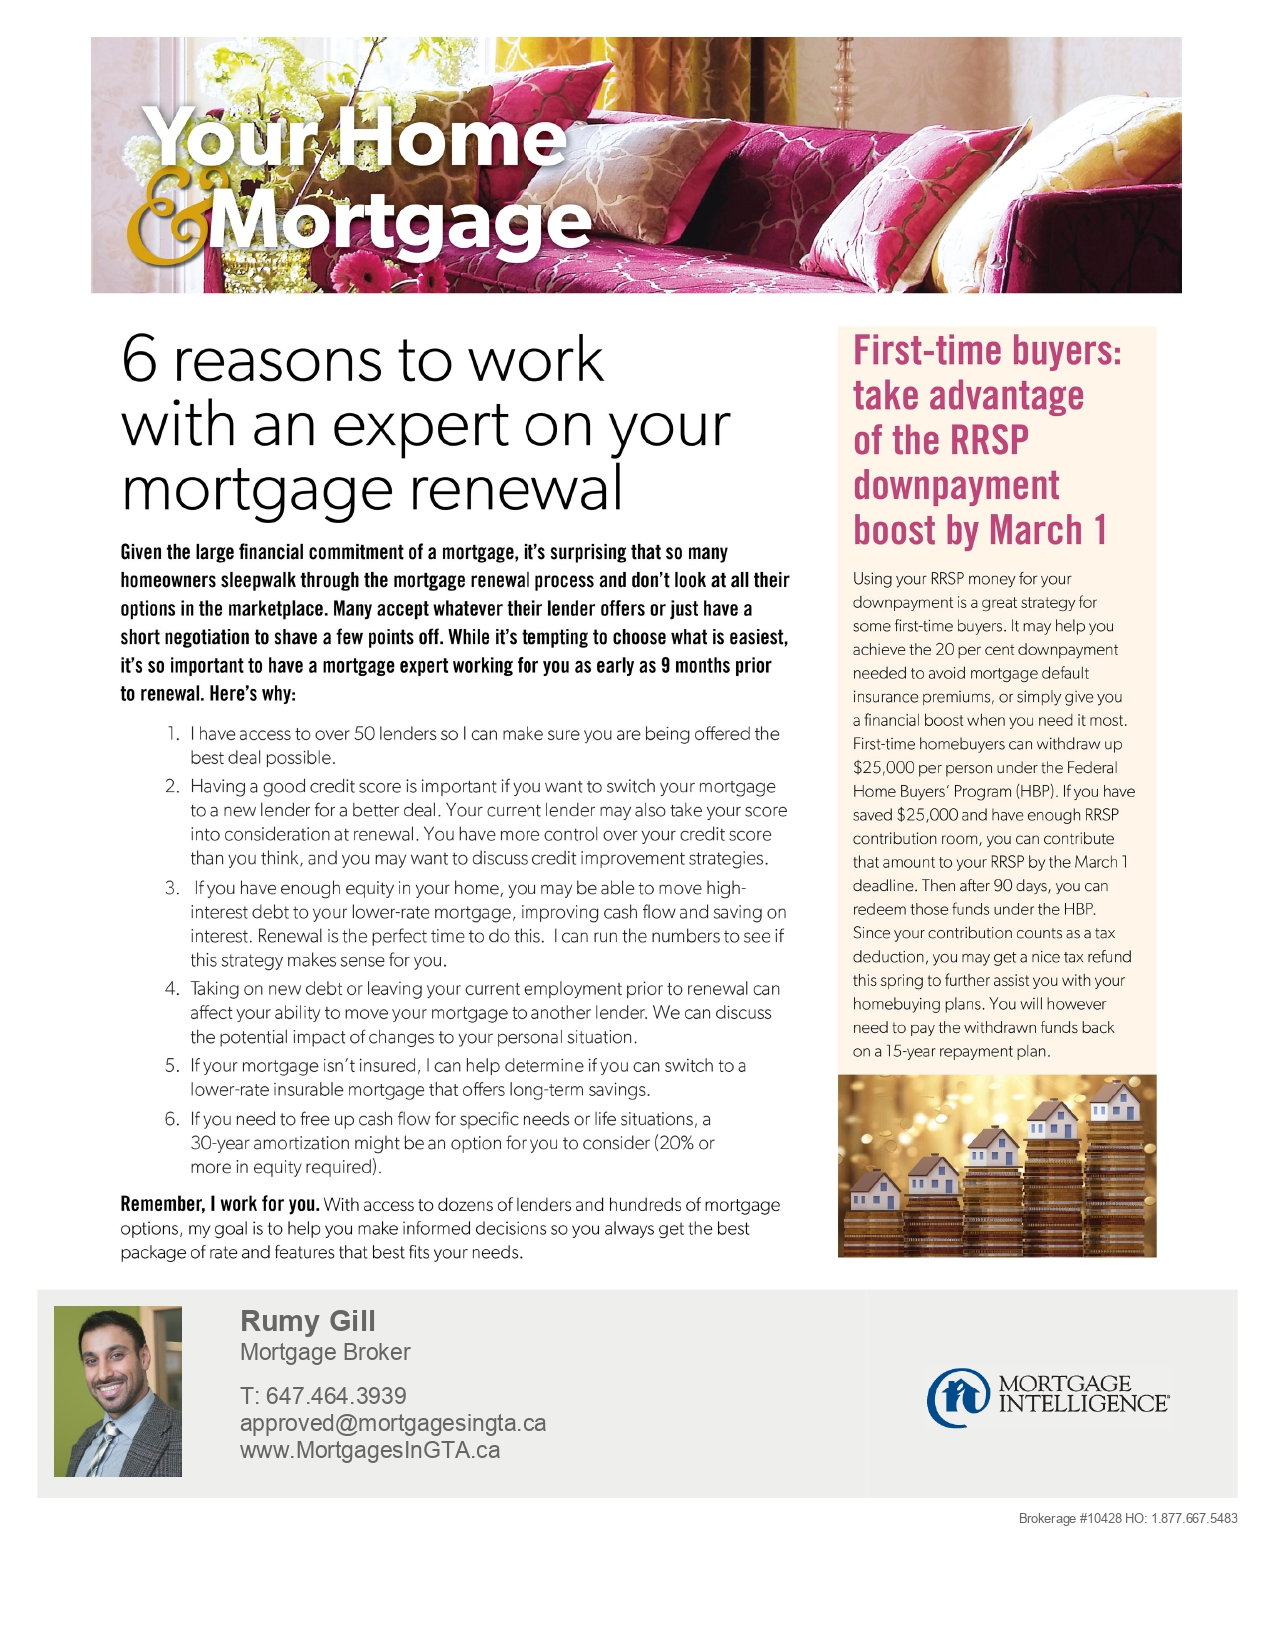 Mortgage Renewal - Mortgage Broker